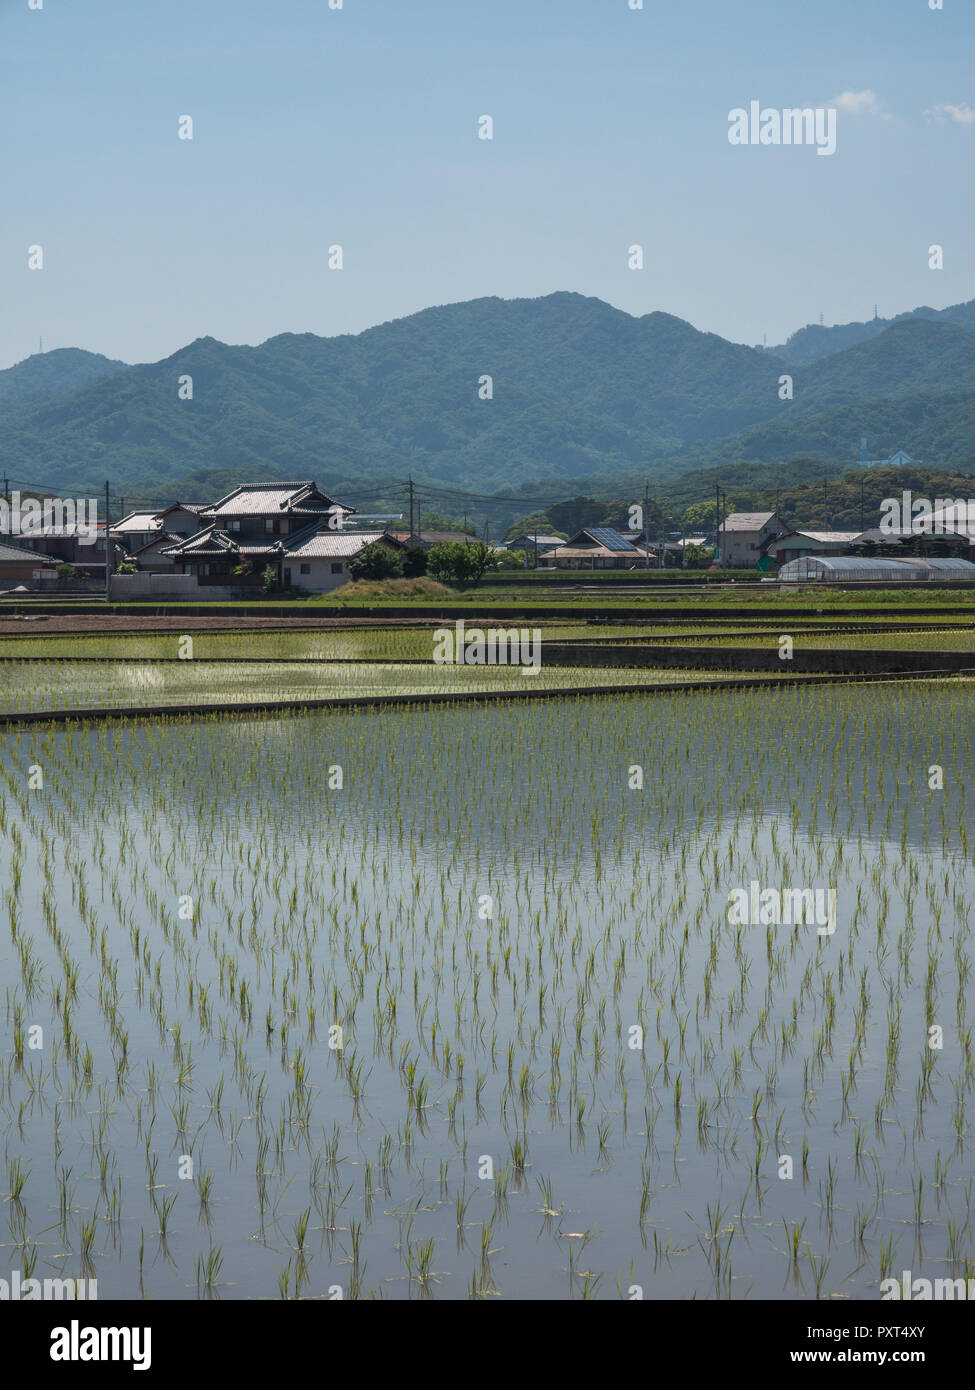 Rice seedlings in flooded field, with village houses and distant blue forest hills, Sanuki,  Kagawa, Japan - Stock Image